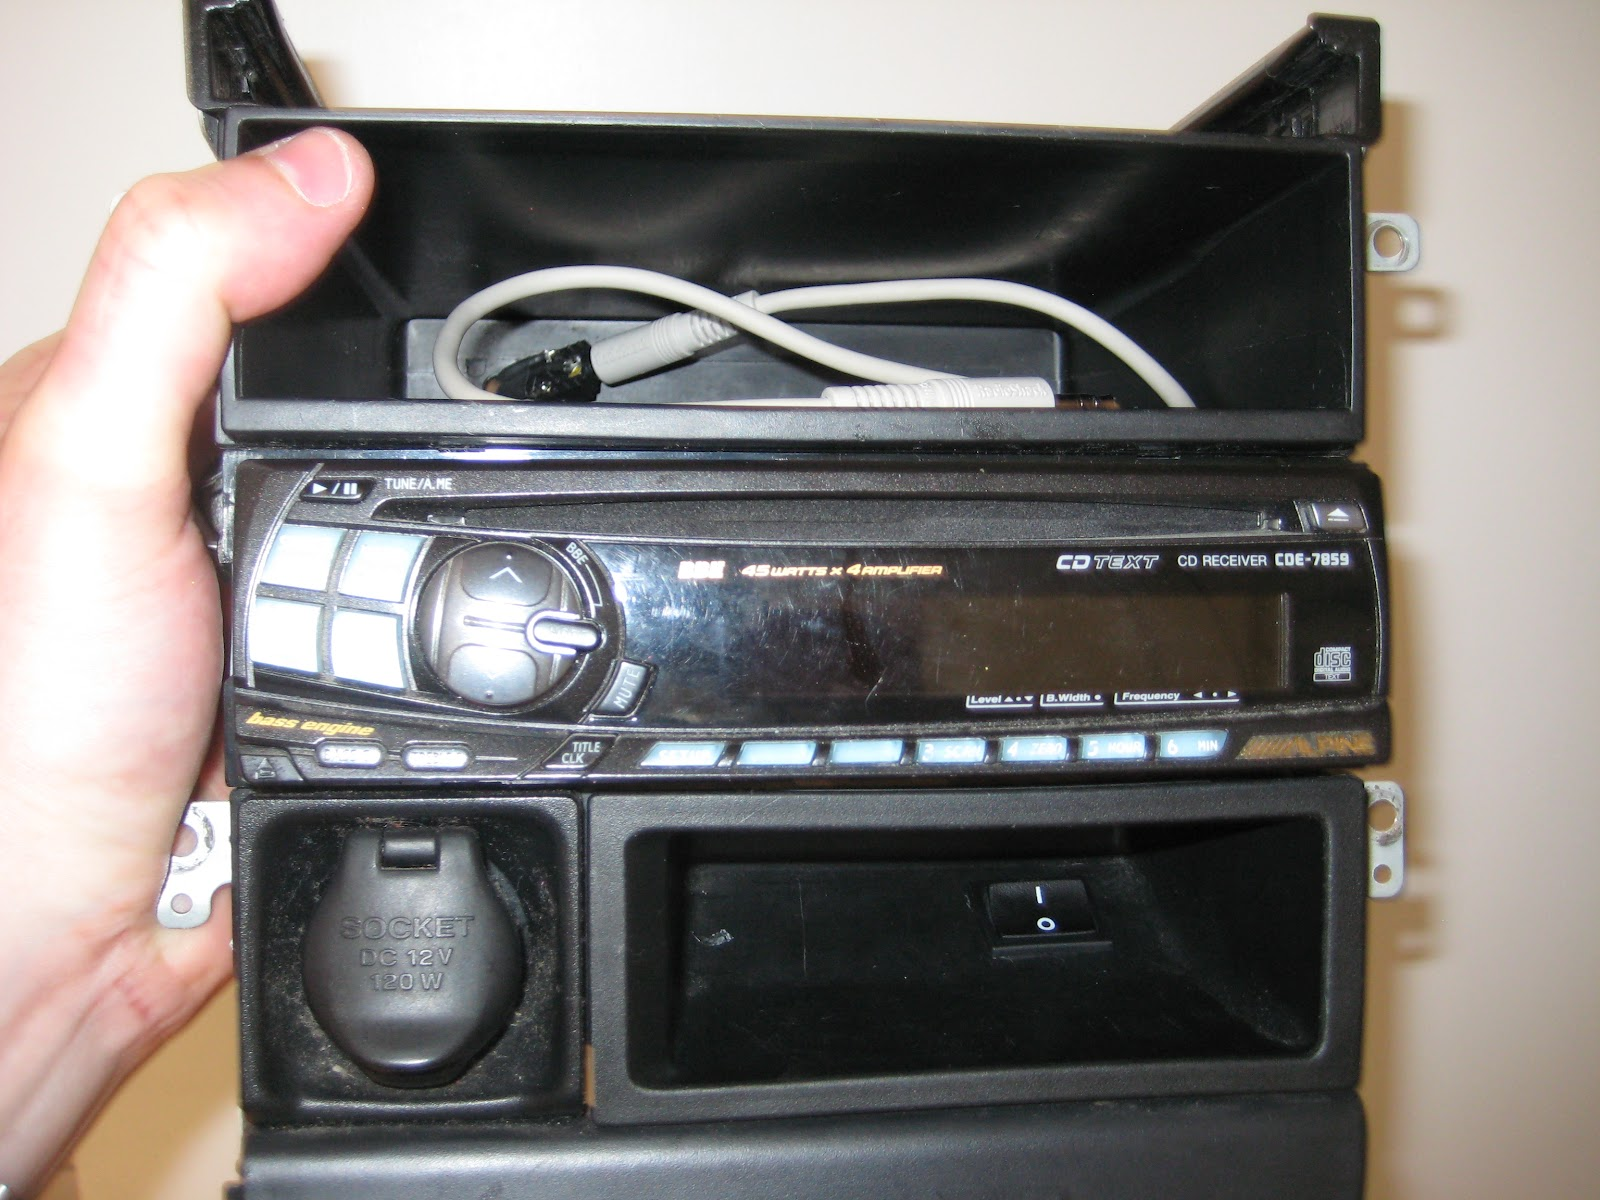 Jaspers Stuff Car Stereo Aux Input Hack 9846 Wiring Diagram Alpine Cd Player And Here Is The In Action